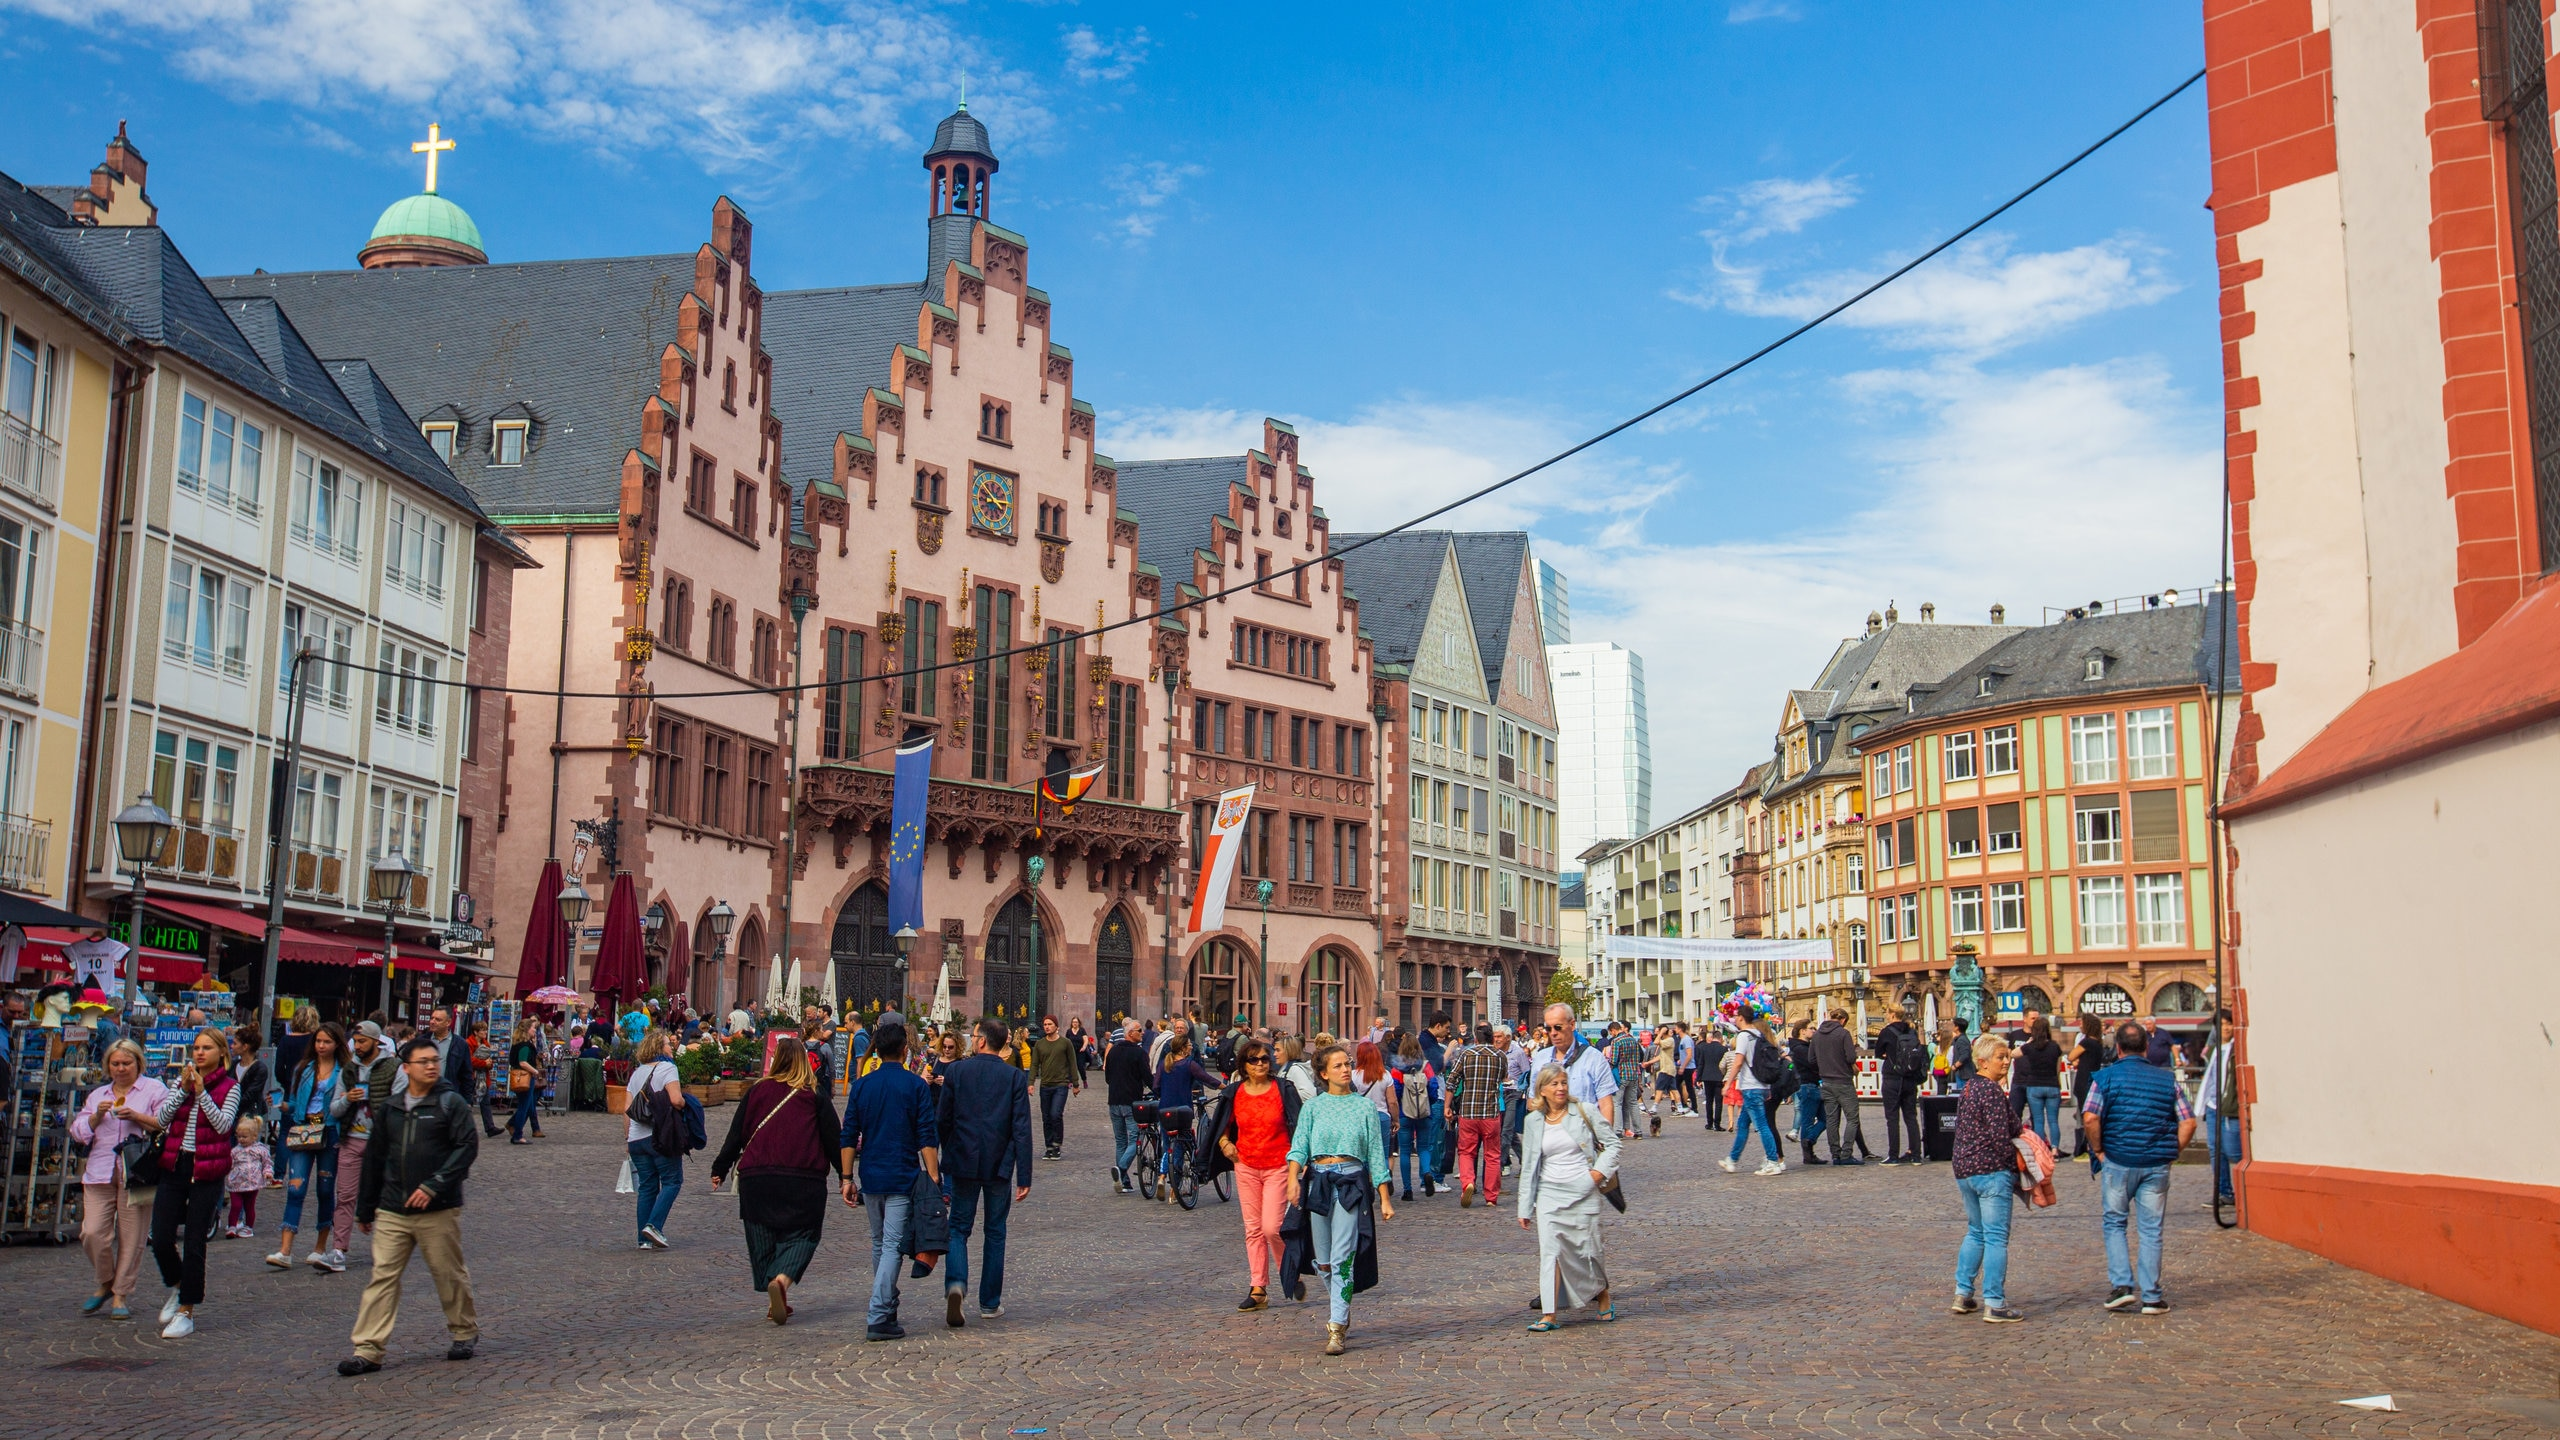 Frankfurt's leaders have met in this town hall since the 16th century. Visit to soak up the history and see snippets of daily life today.